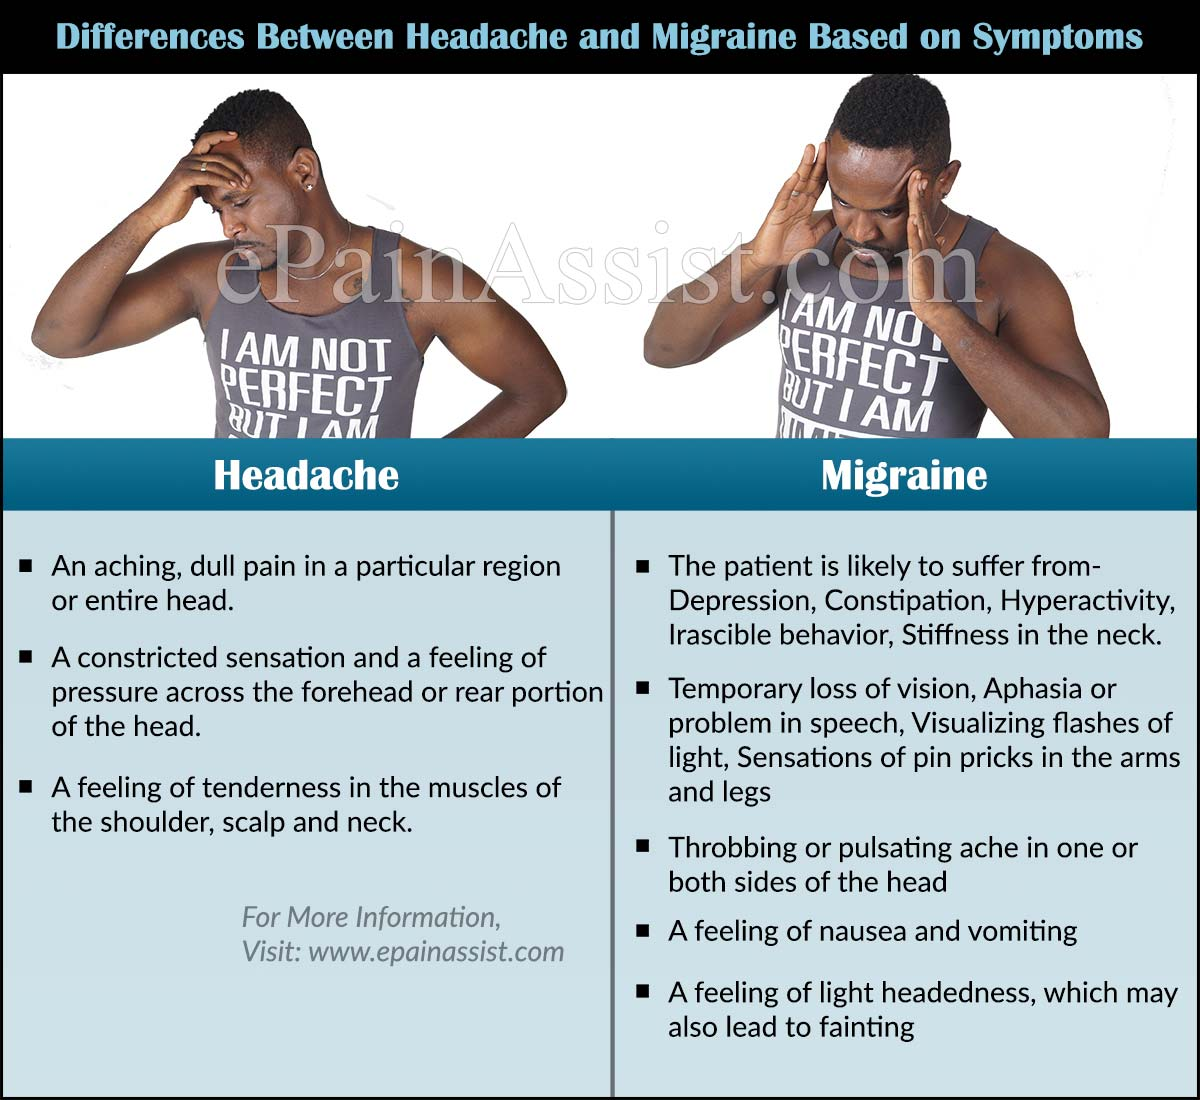 Headaches Vs. Migraine